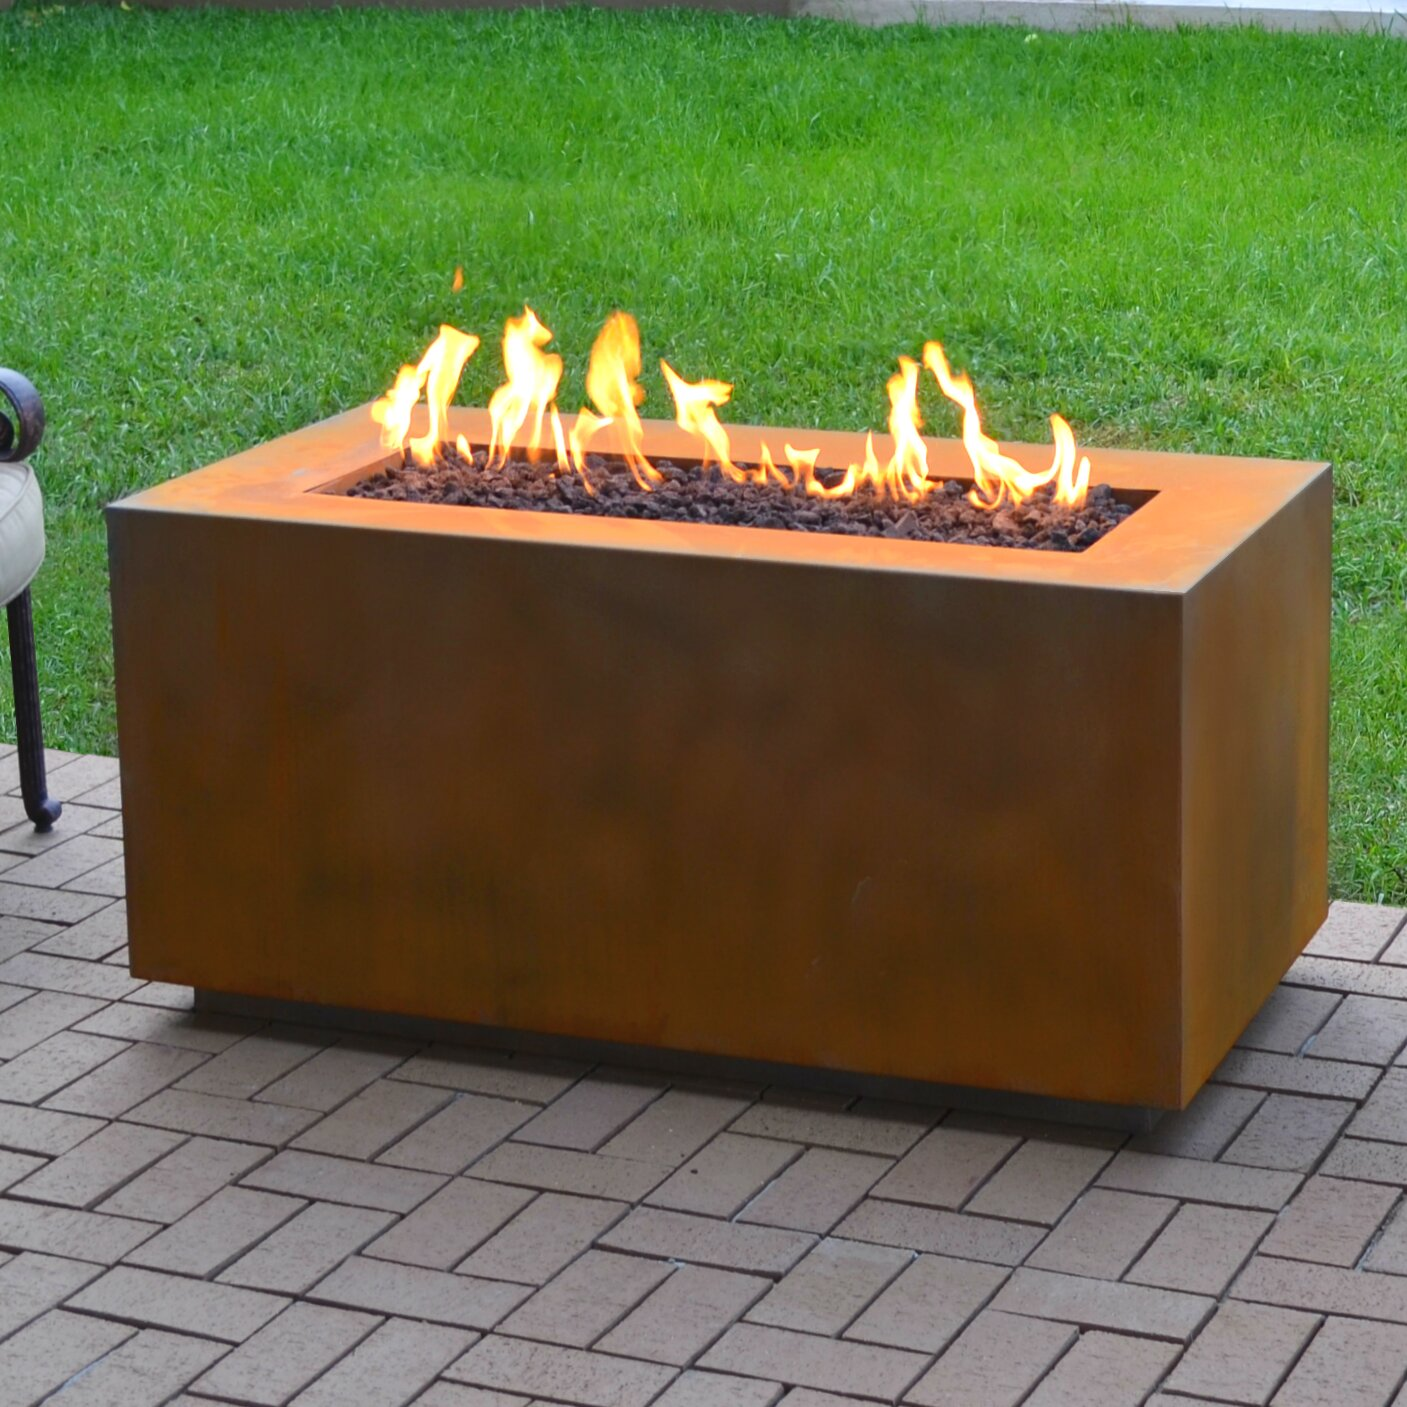 The Outdoor Plus Corten Steel Propane Fire Pit Table